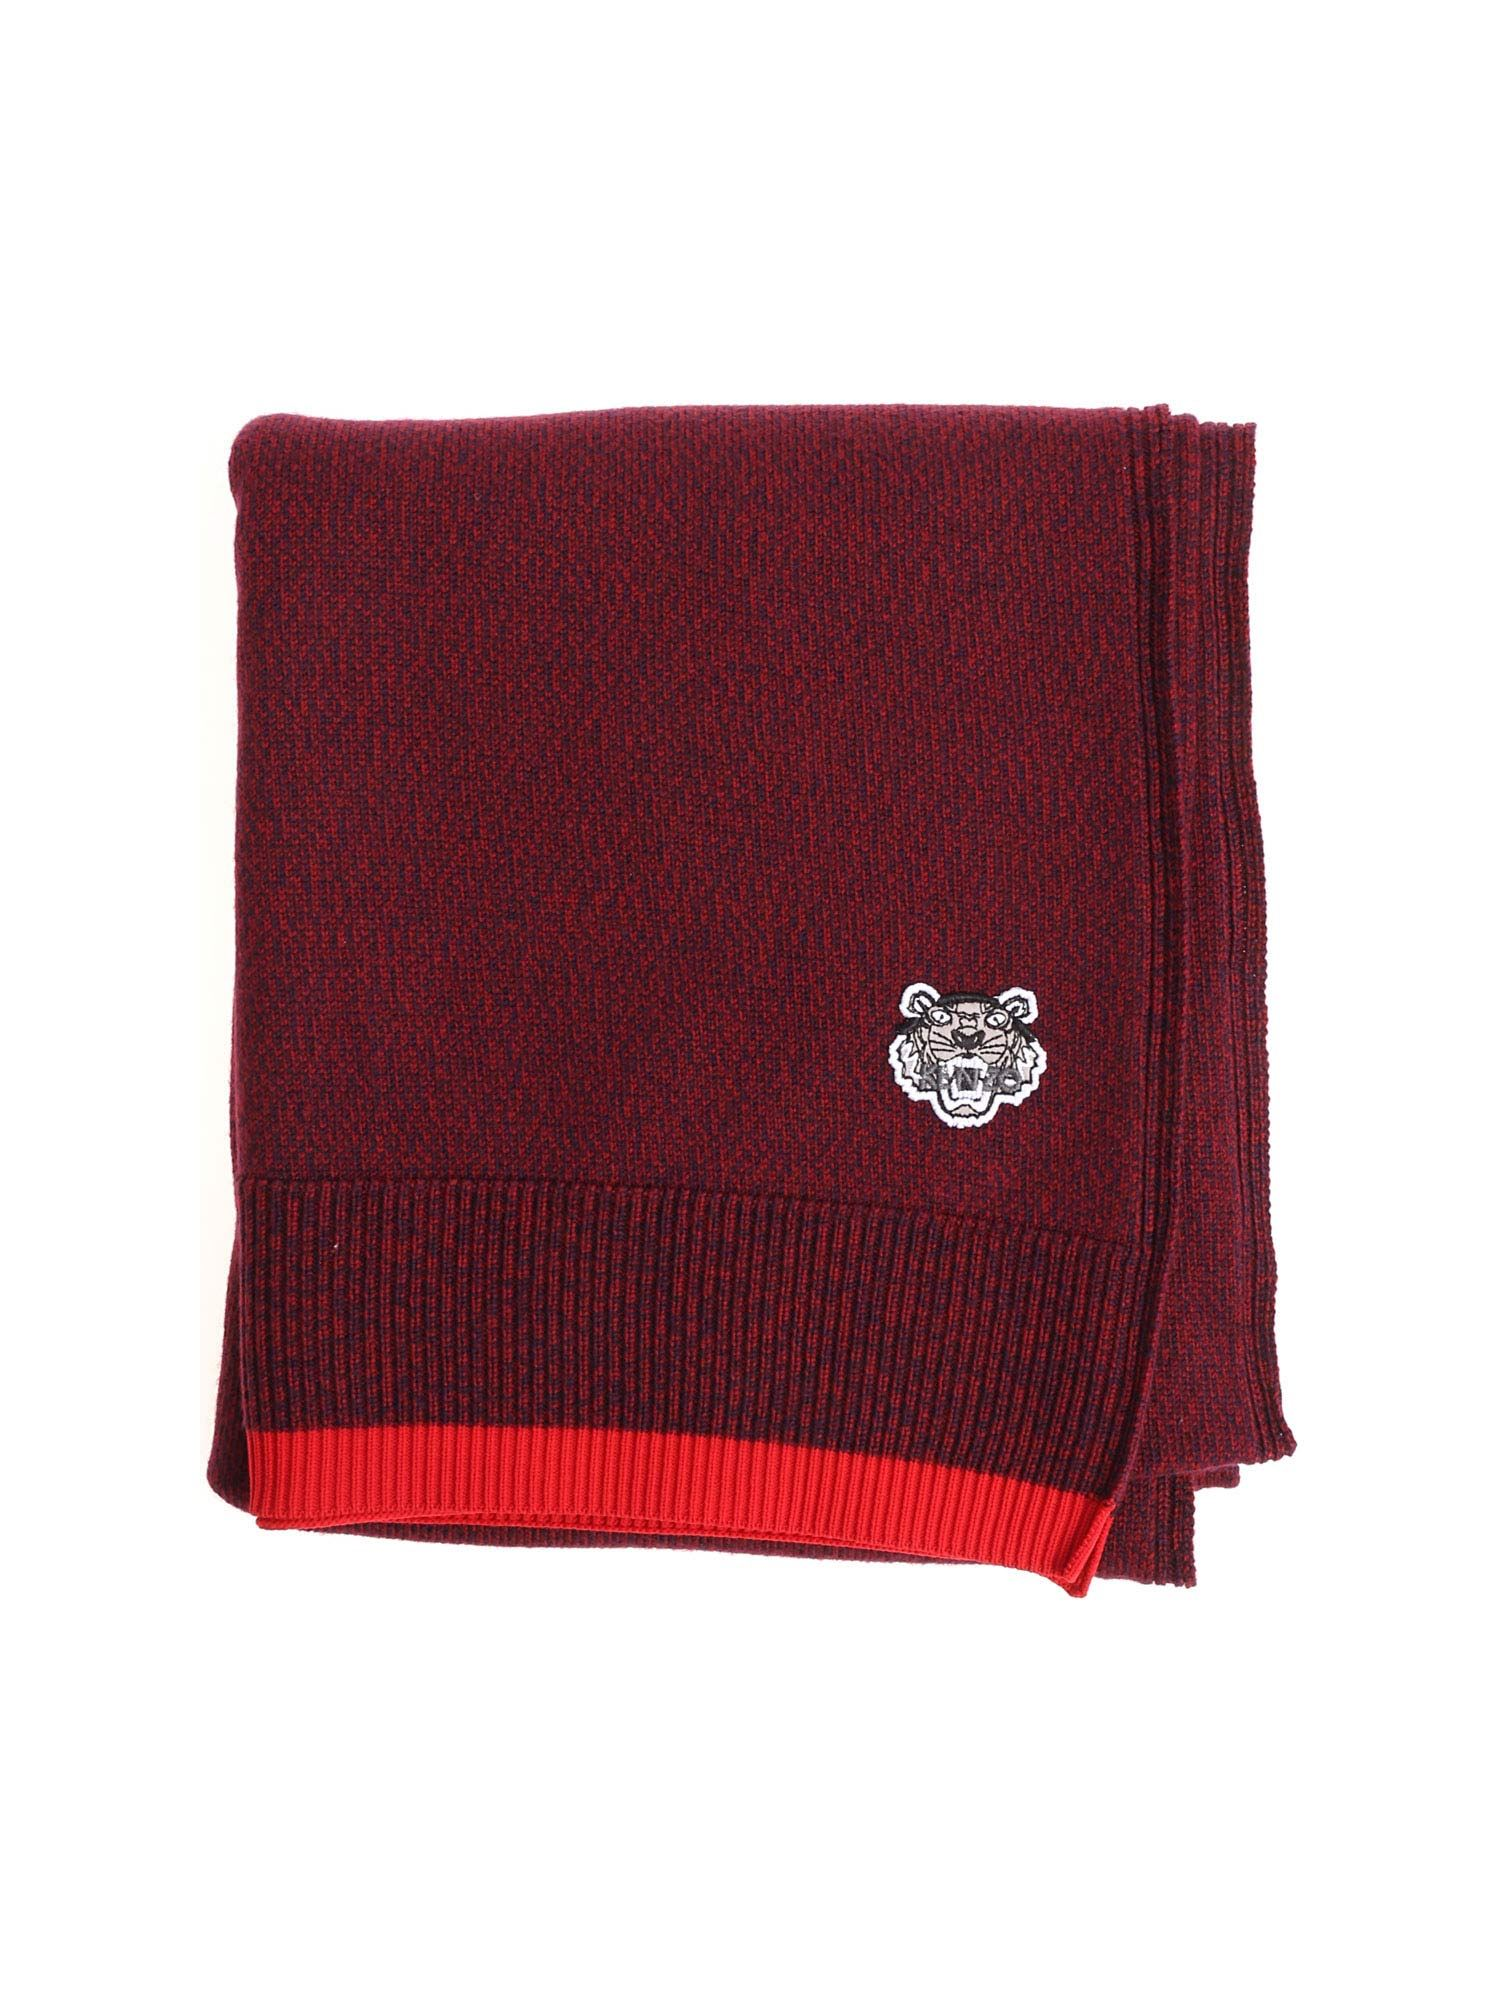 Kenzo Blue And Red Scarf With Tiger Logo